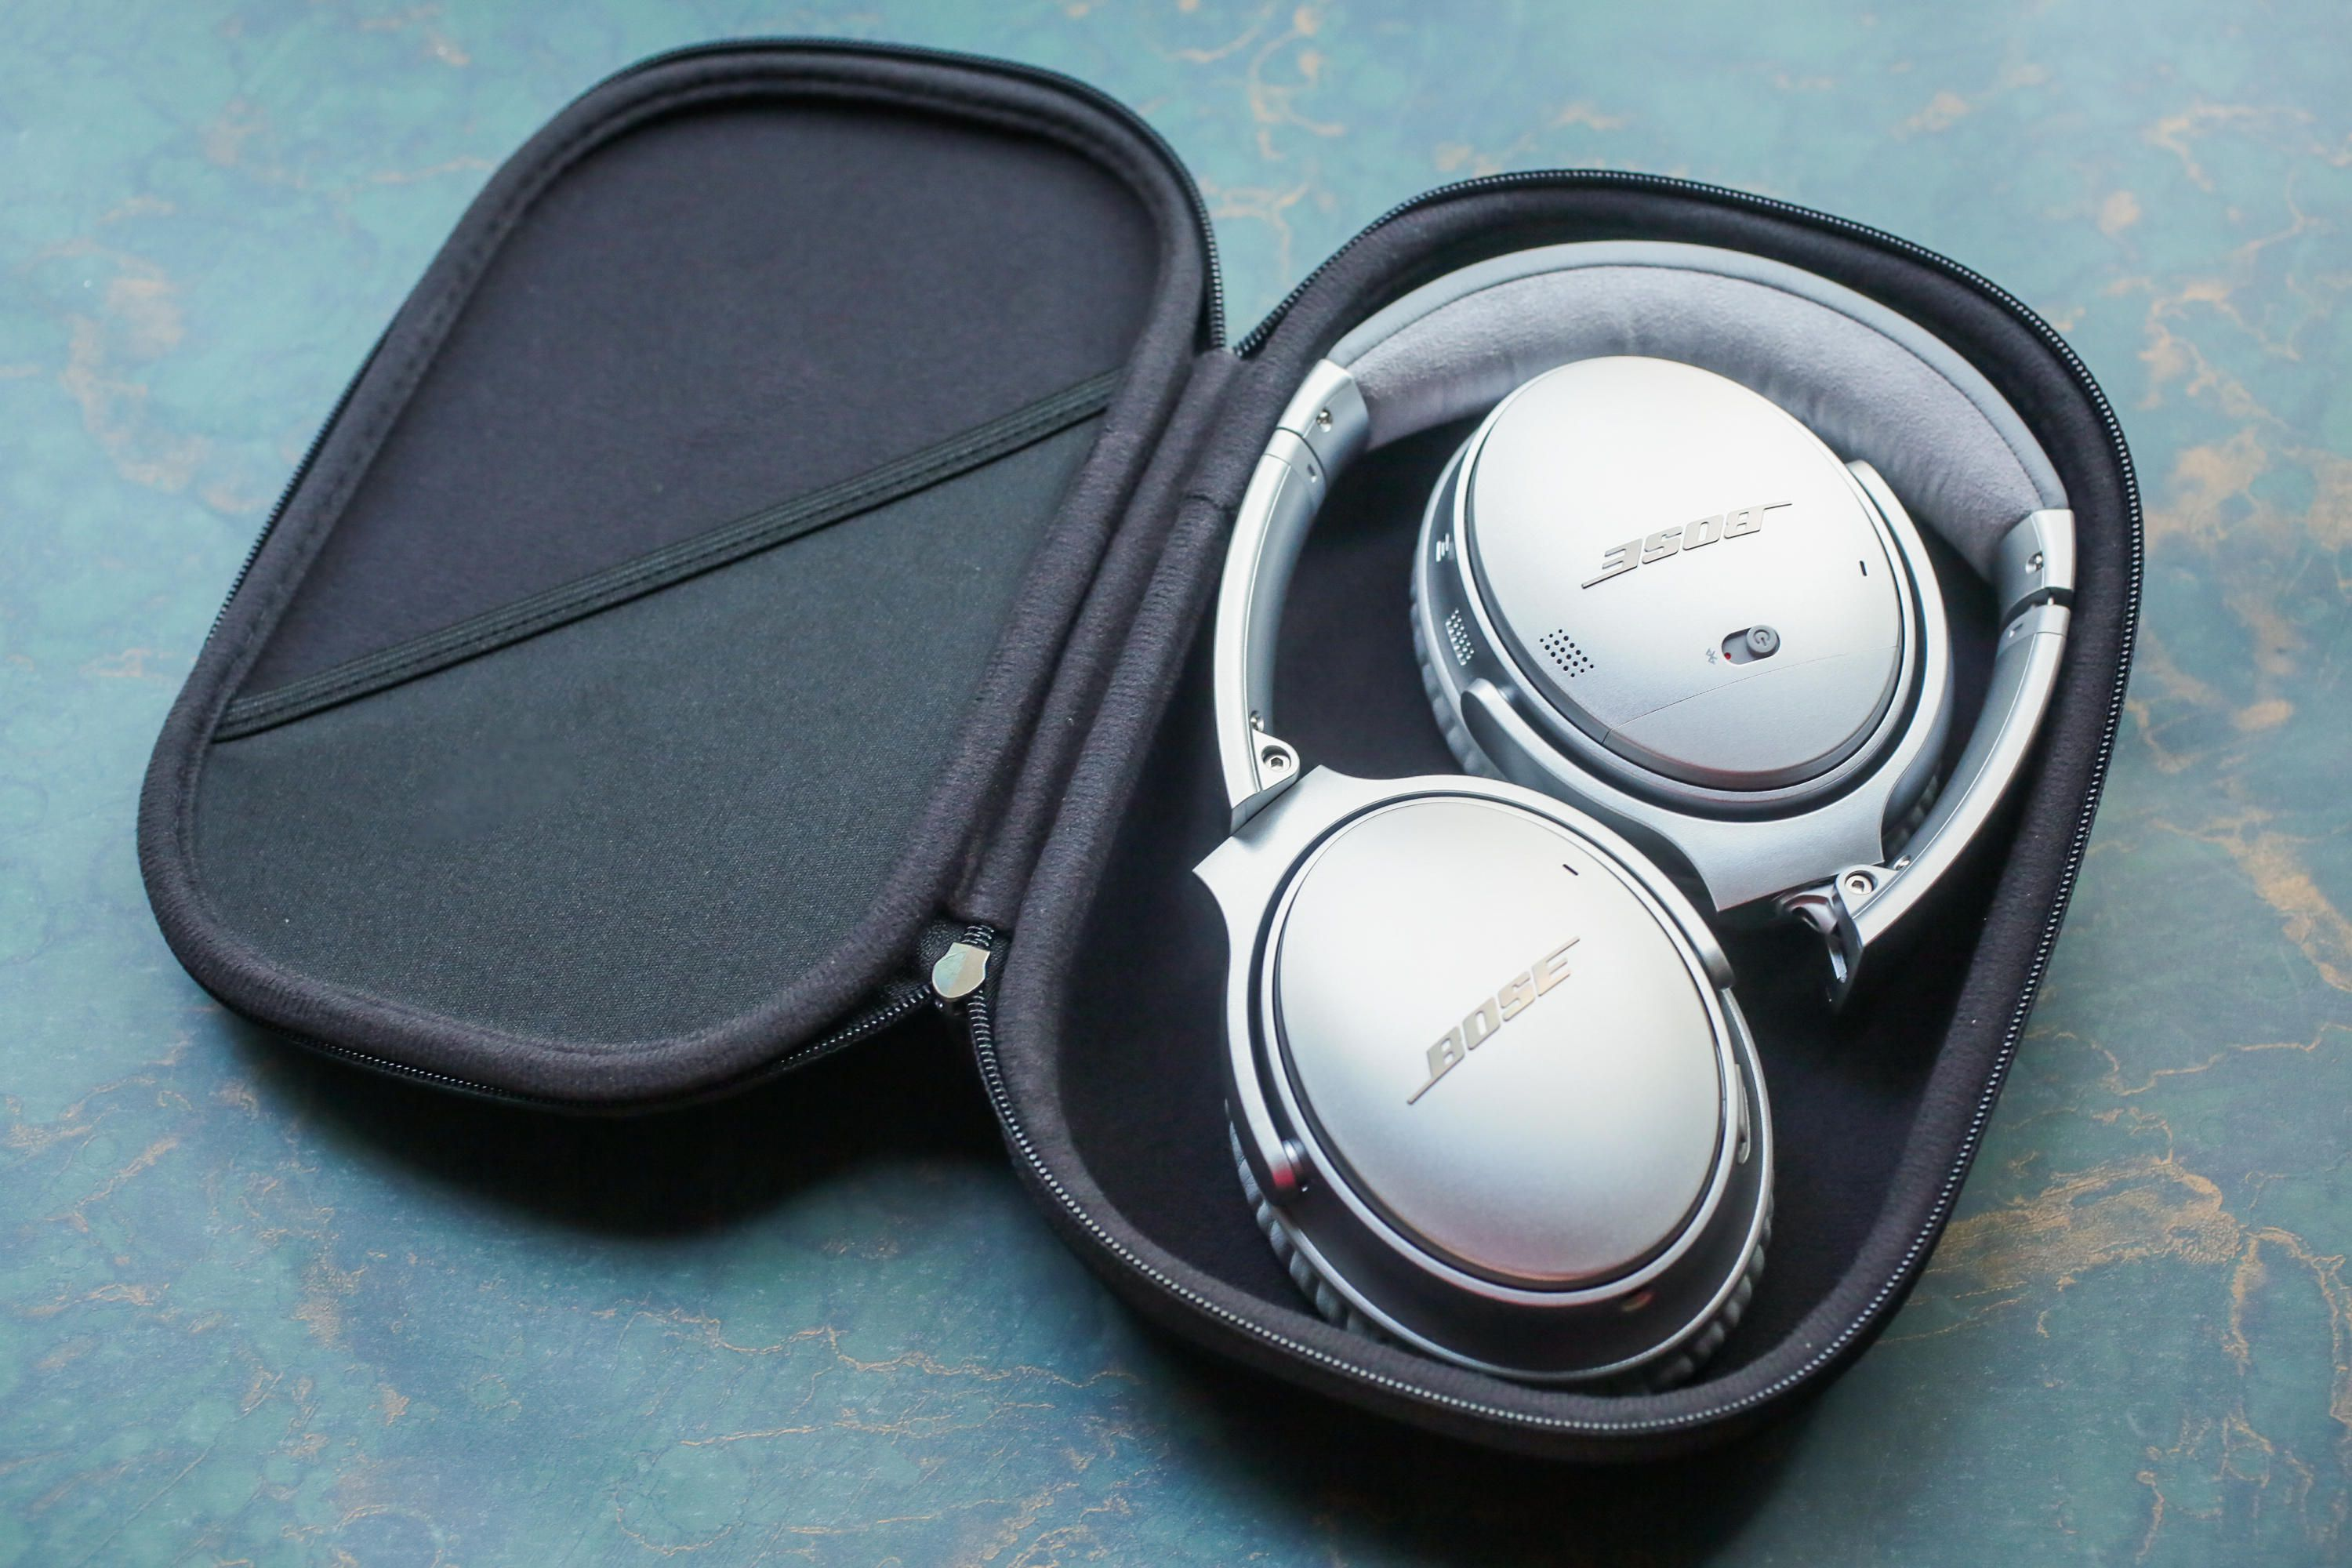 Image result for Bose QuietComfort 35 II - HD Images